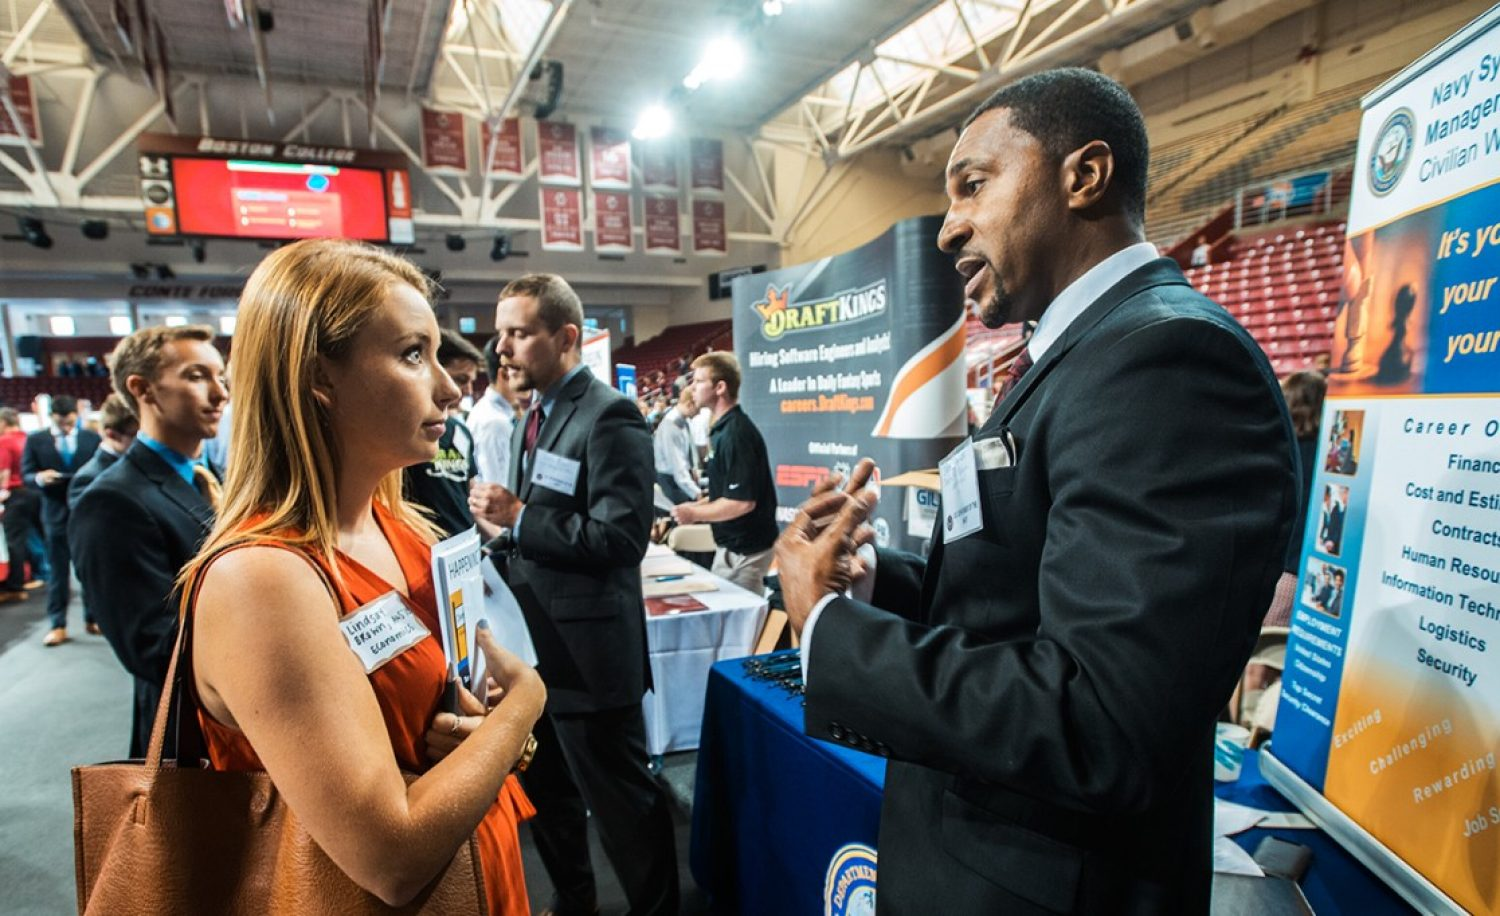 Two people shaking hands at a career fair